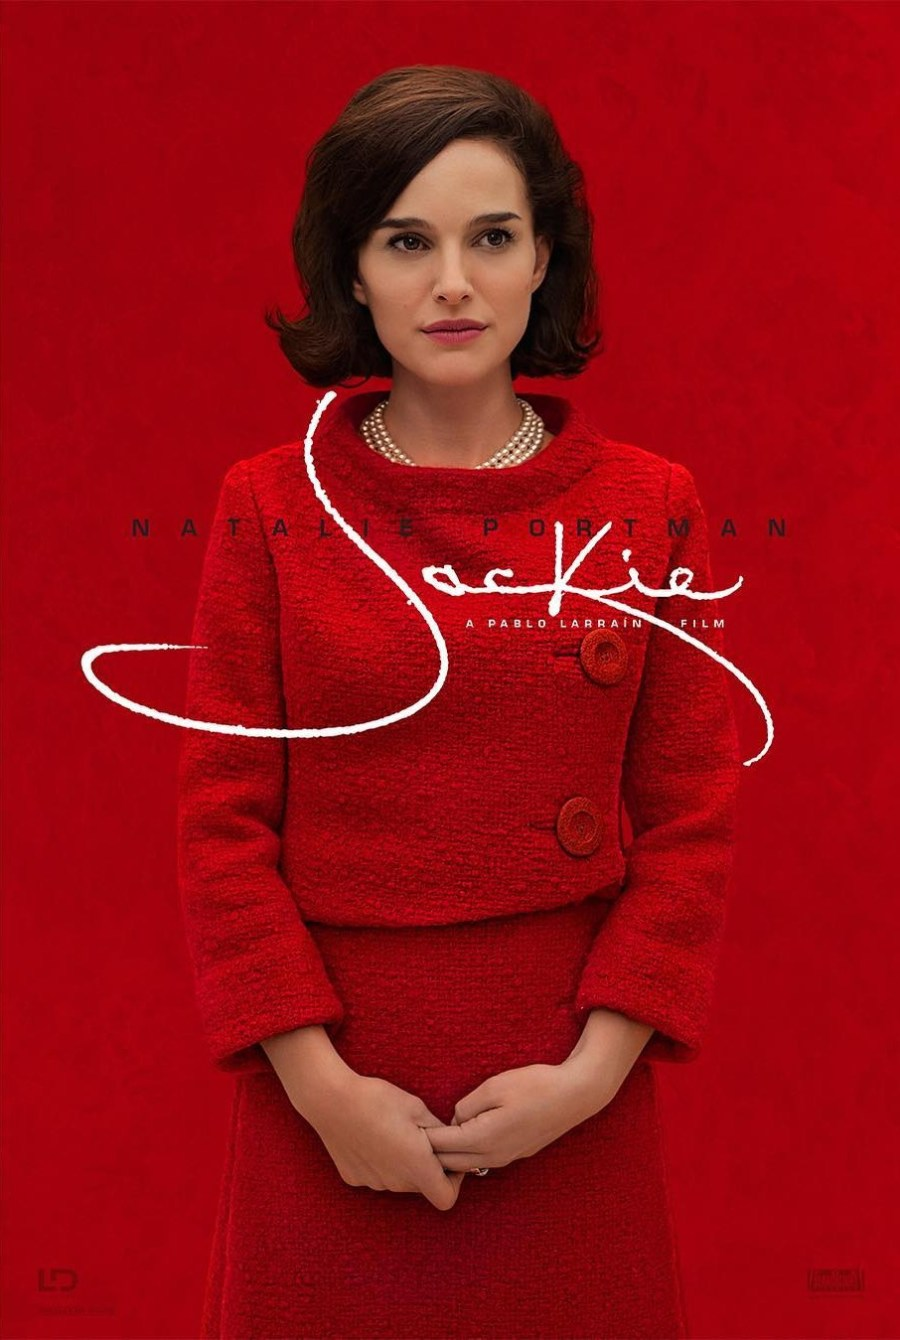 jackie-movie-poster